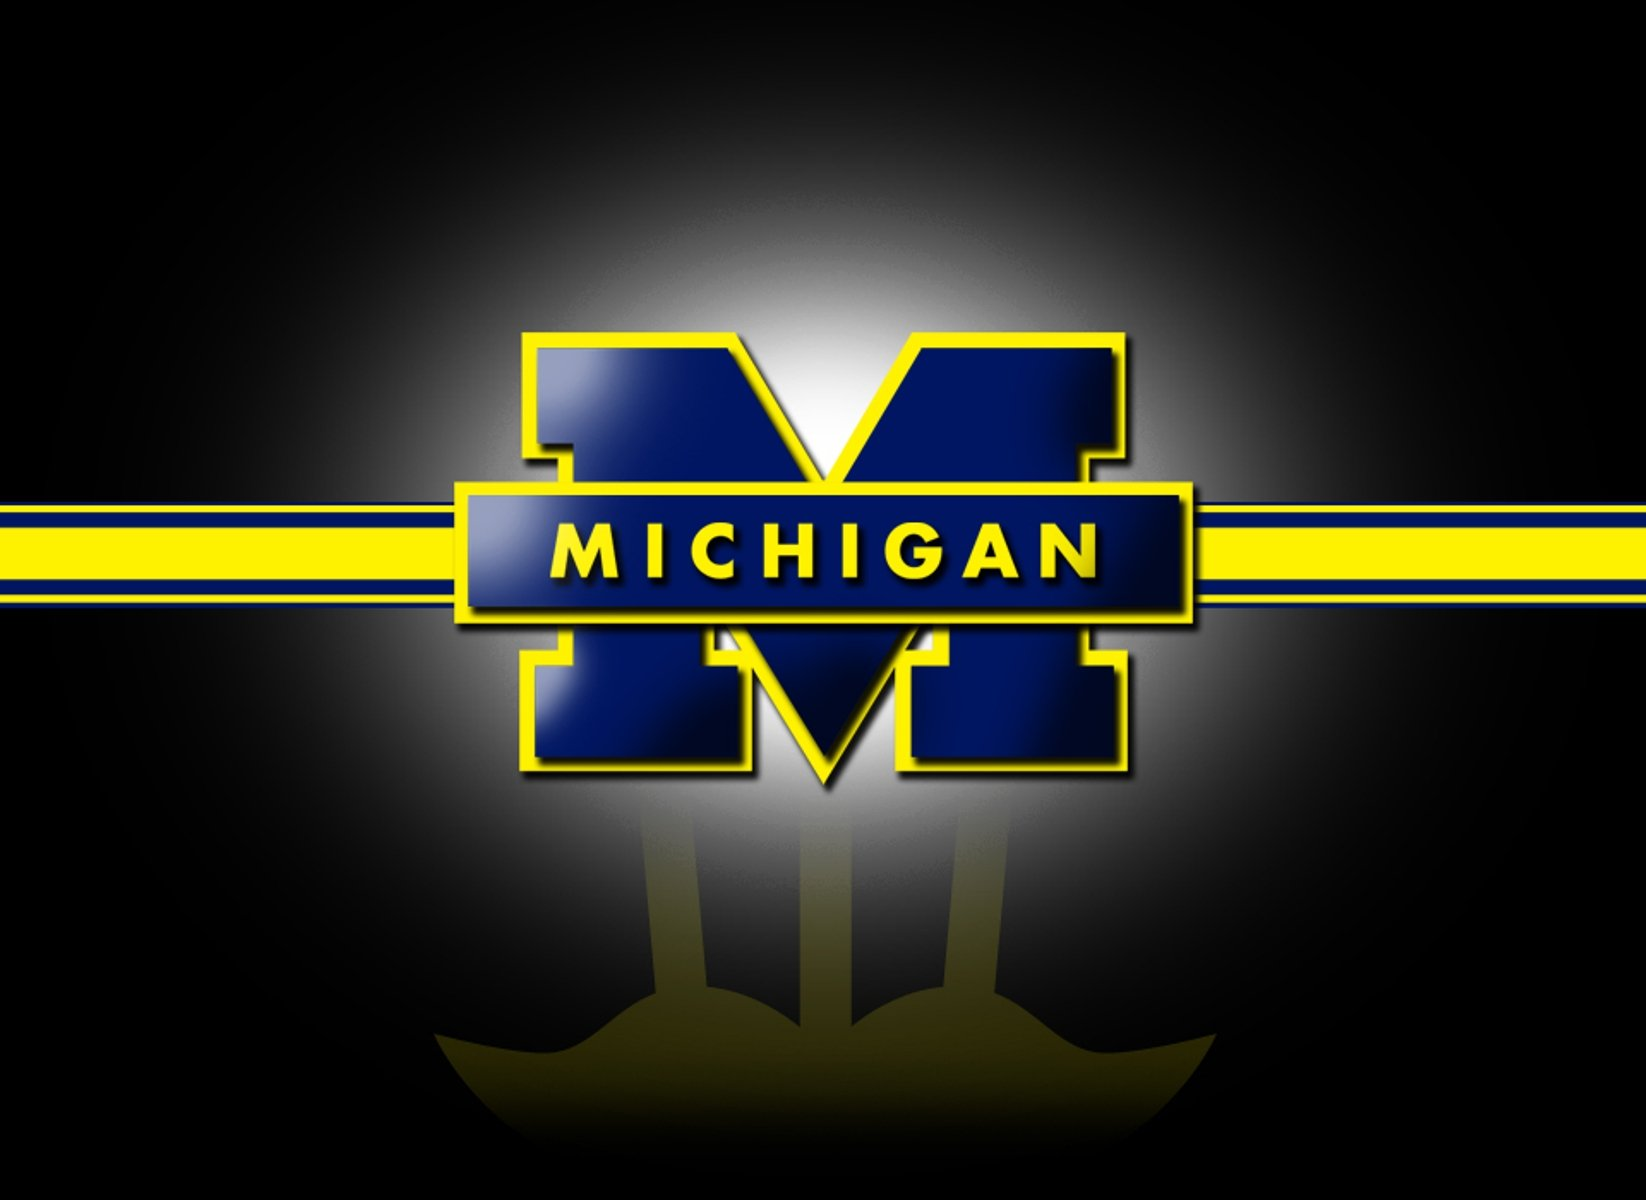 Awesome Michigan Wolverines Wallpaper: Michigan Football IPhone Wallpaper